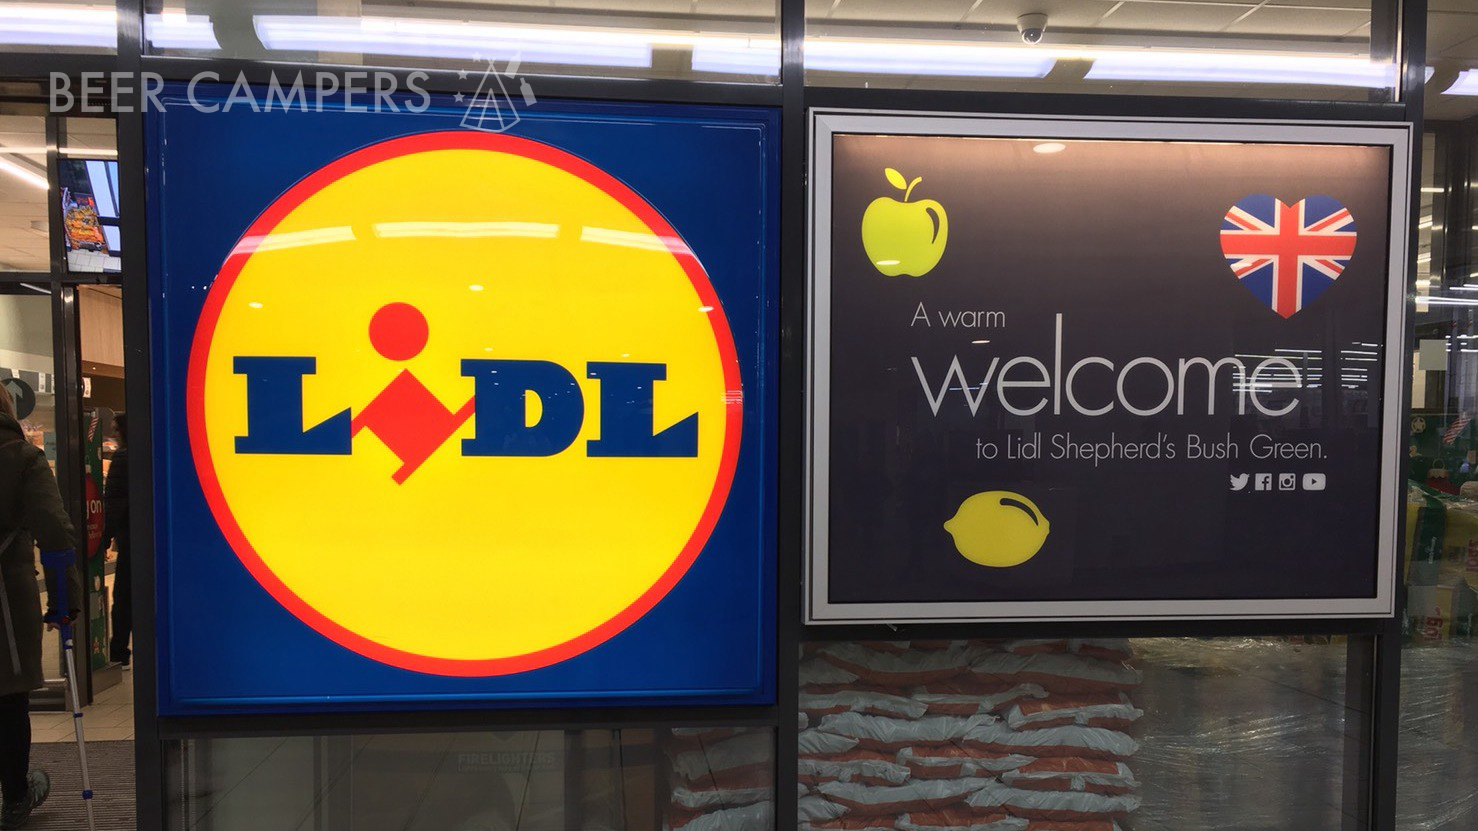 [WATERMARKED] LIDL